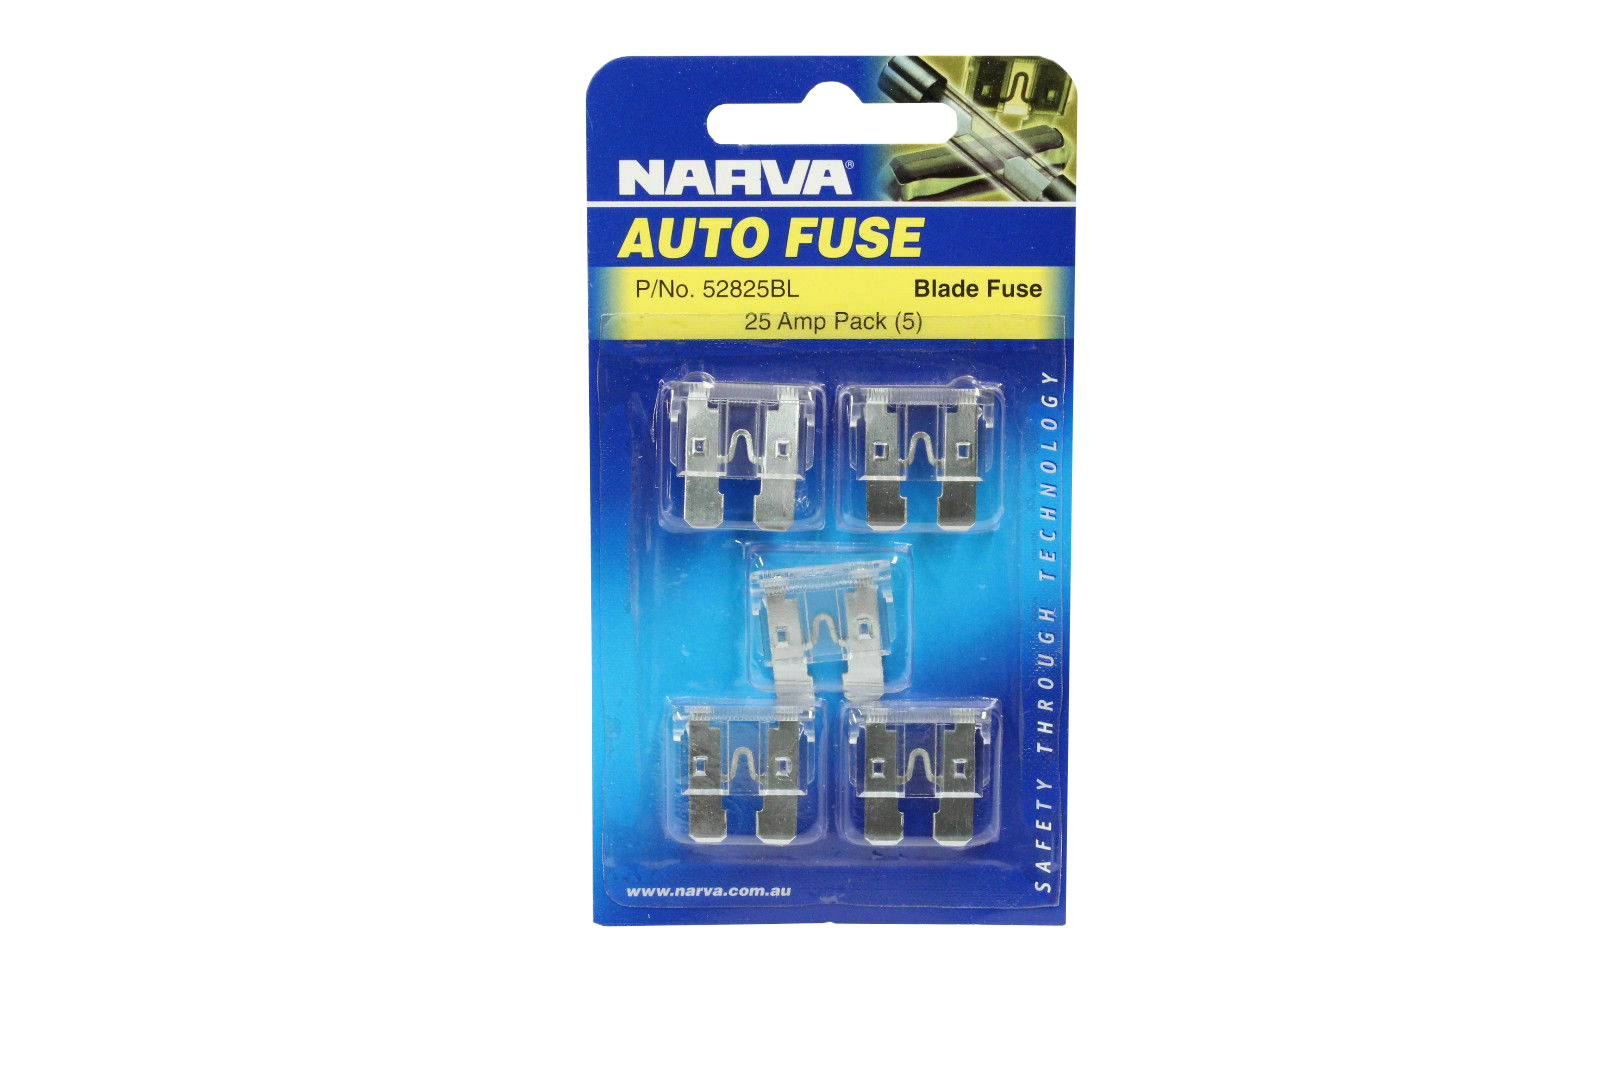 NARVA 25 Amp CLEAR ATS Blade Fuse - 5 Per Pack. 52825BL